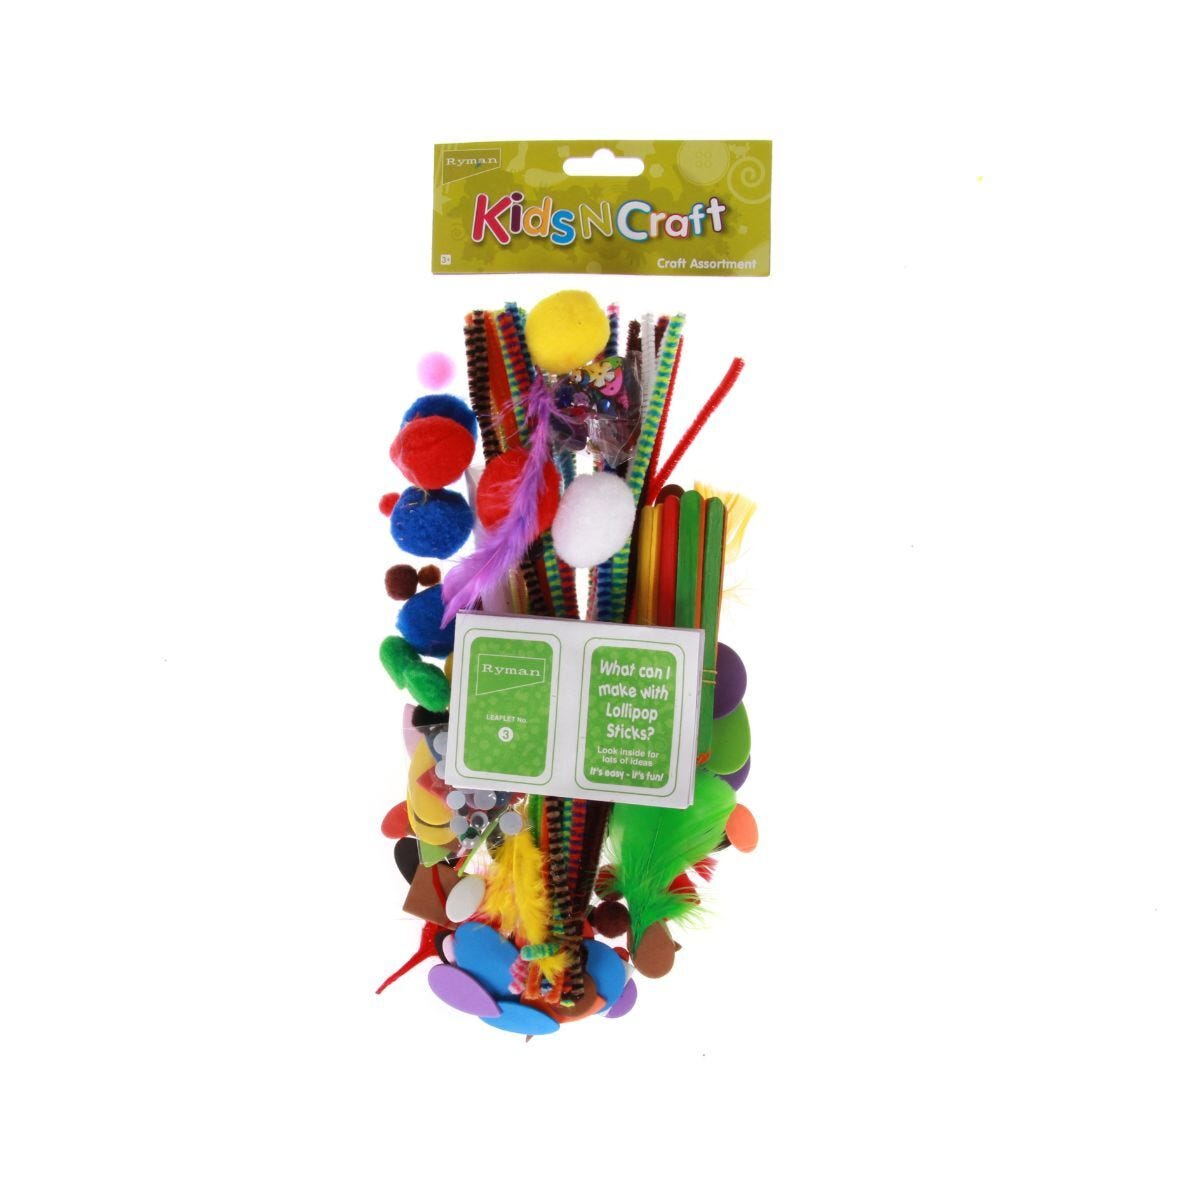 Ryman Kids N Craft Activity Kit